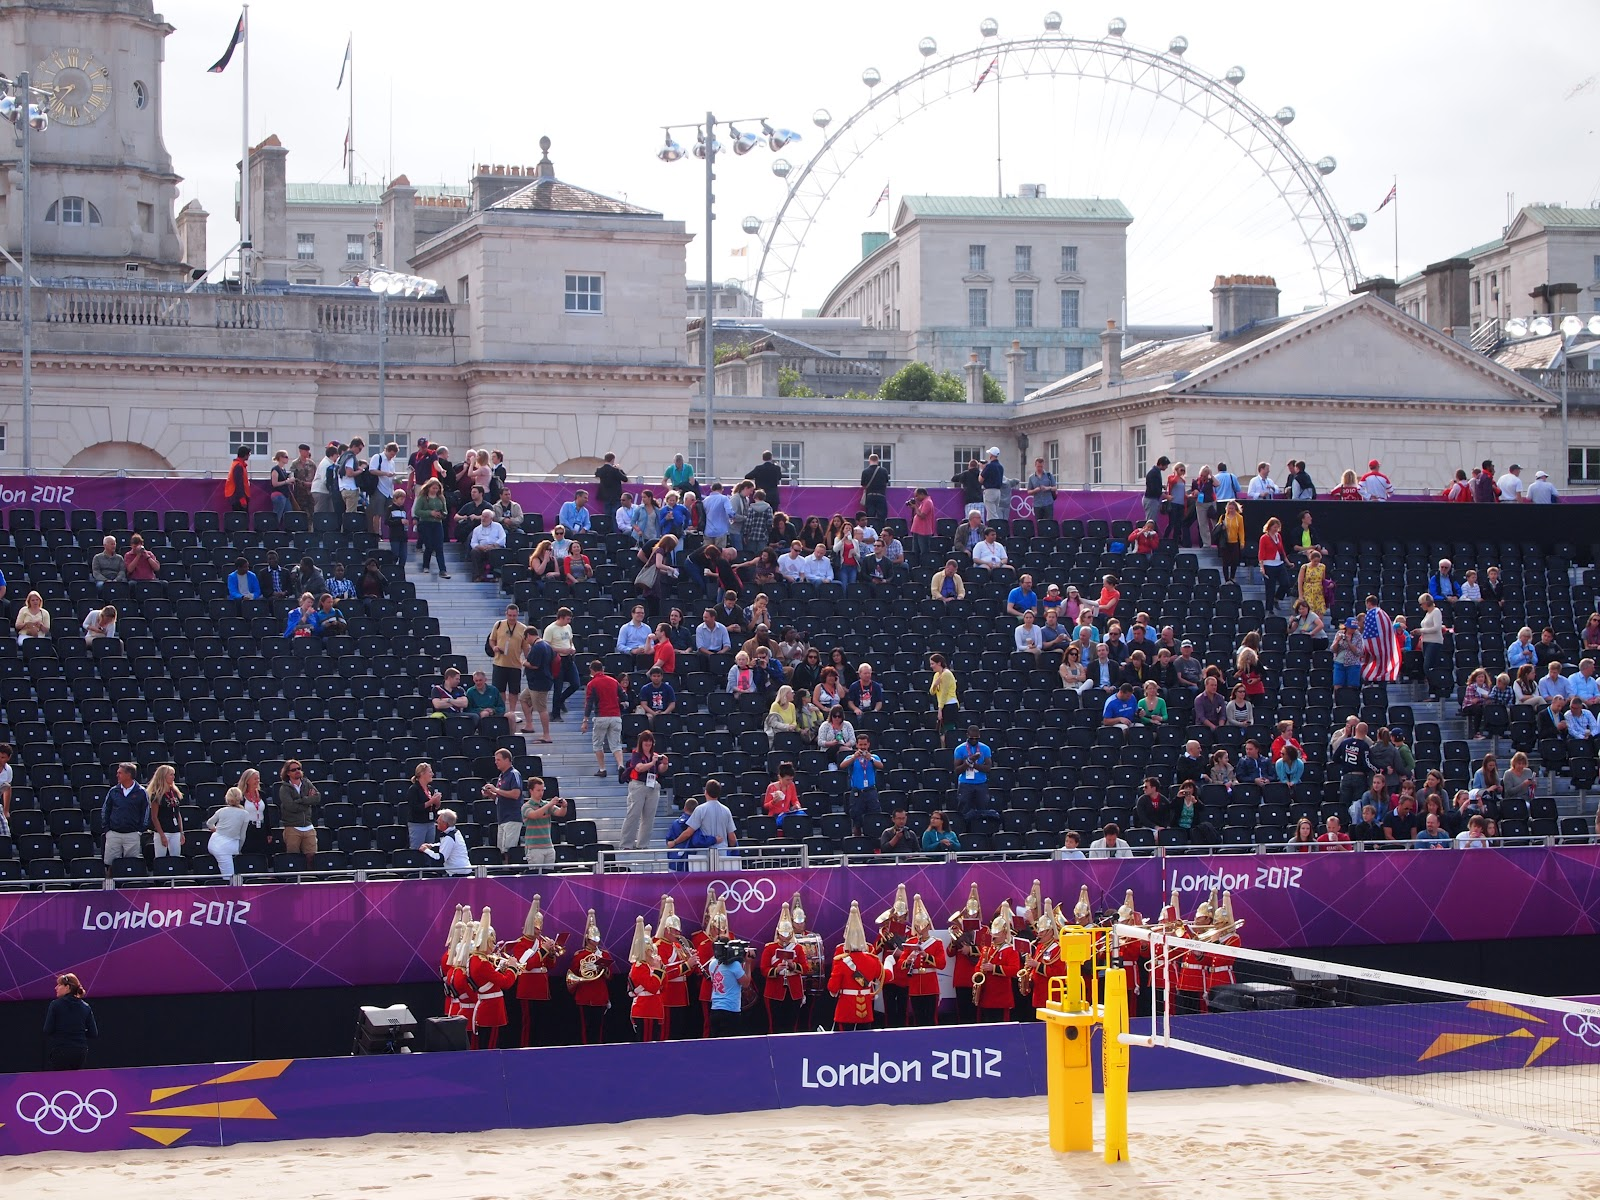 I don't know if the bureaucrats complained about the beach volleyball being ...